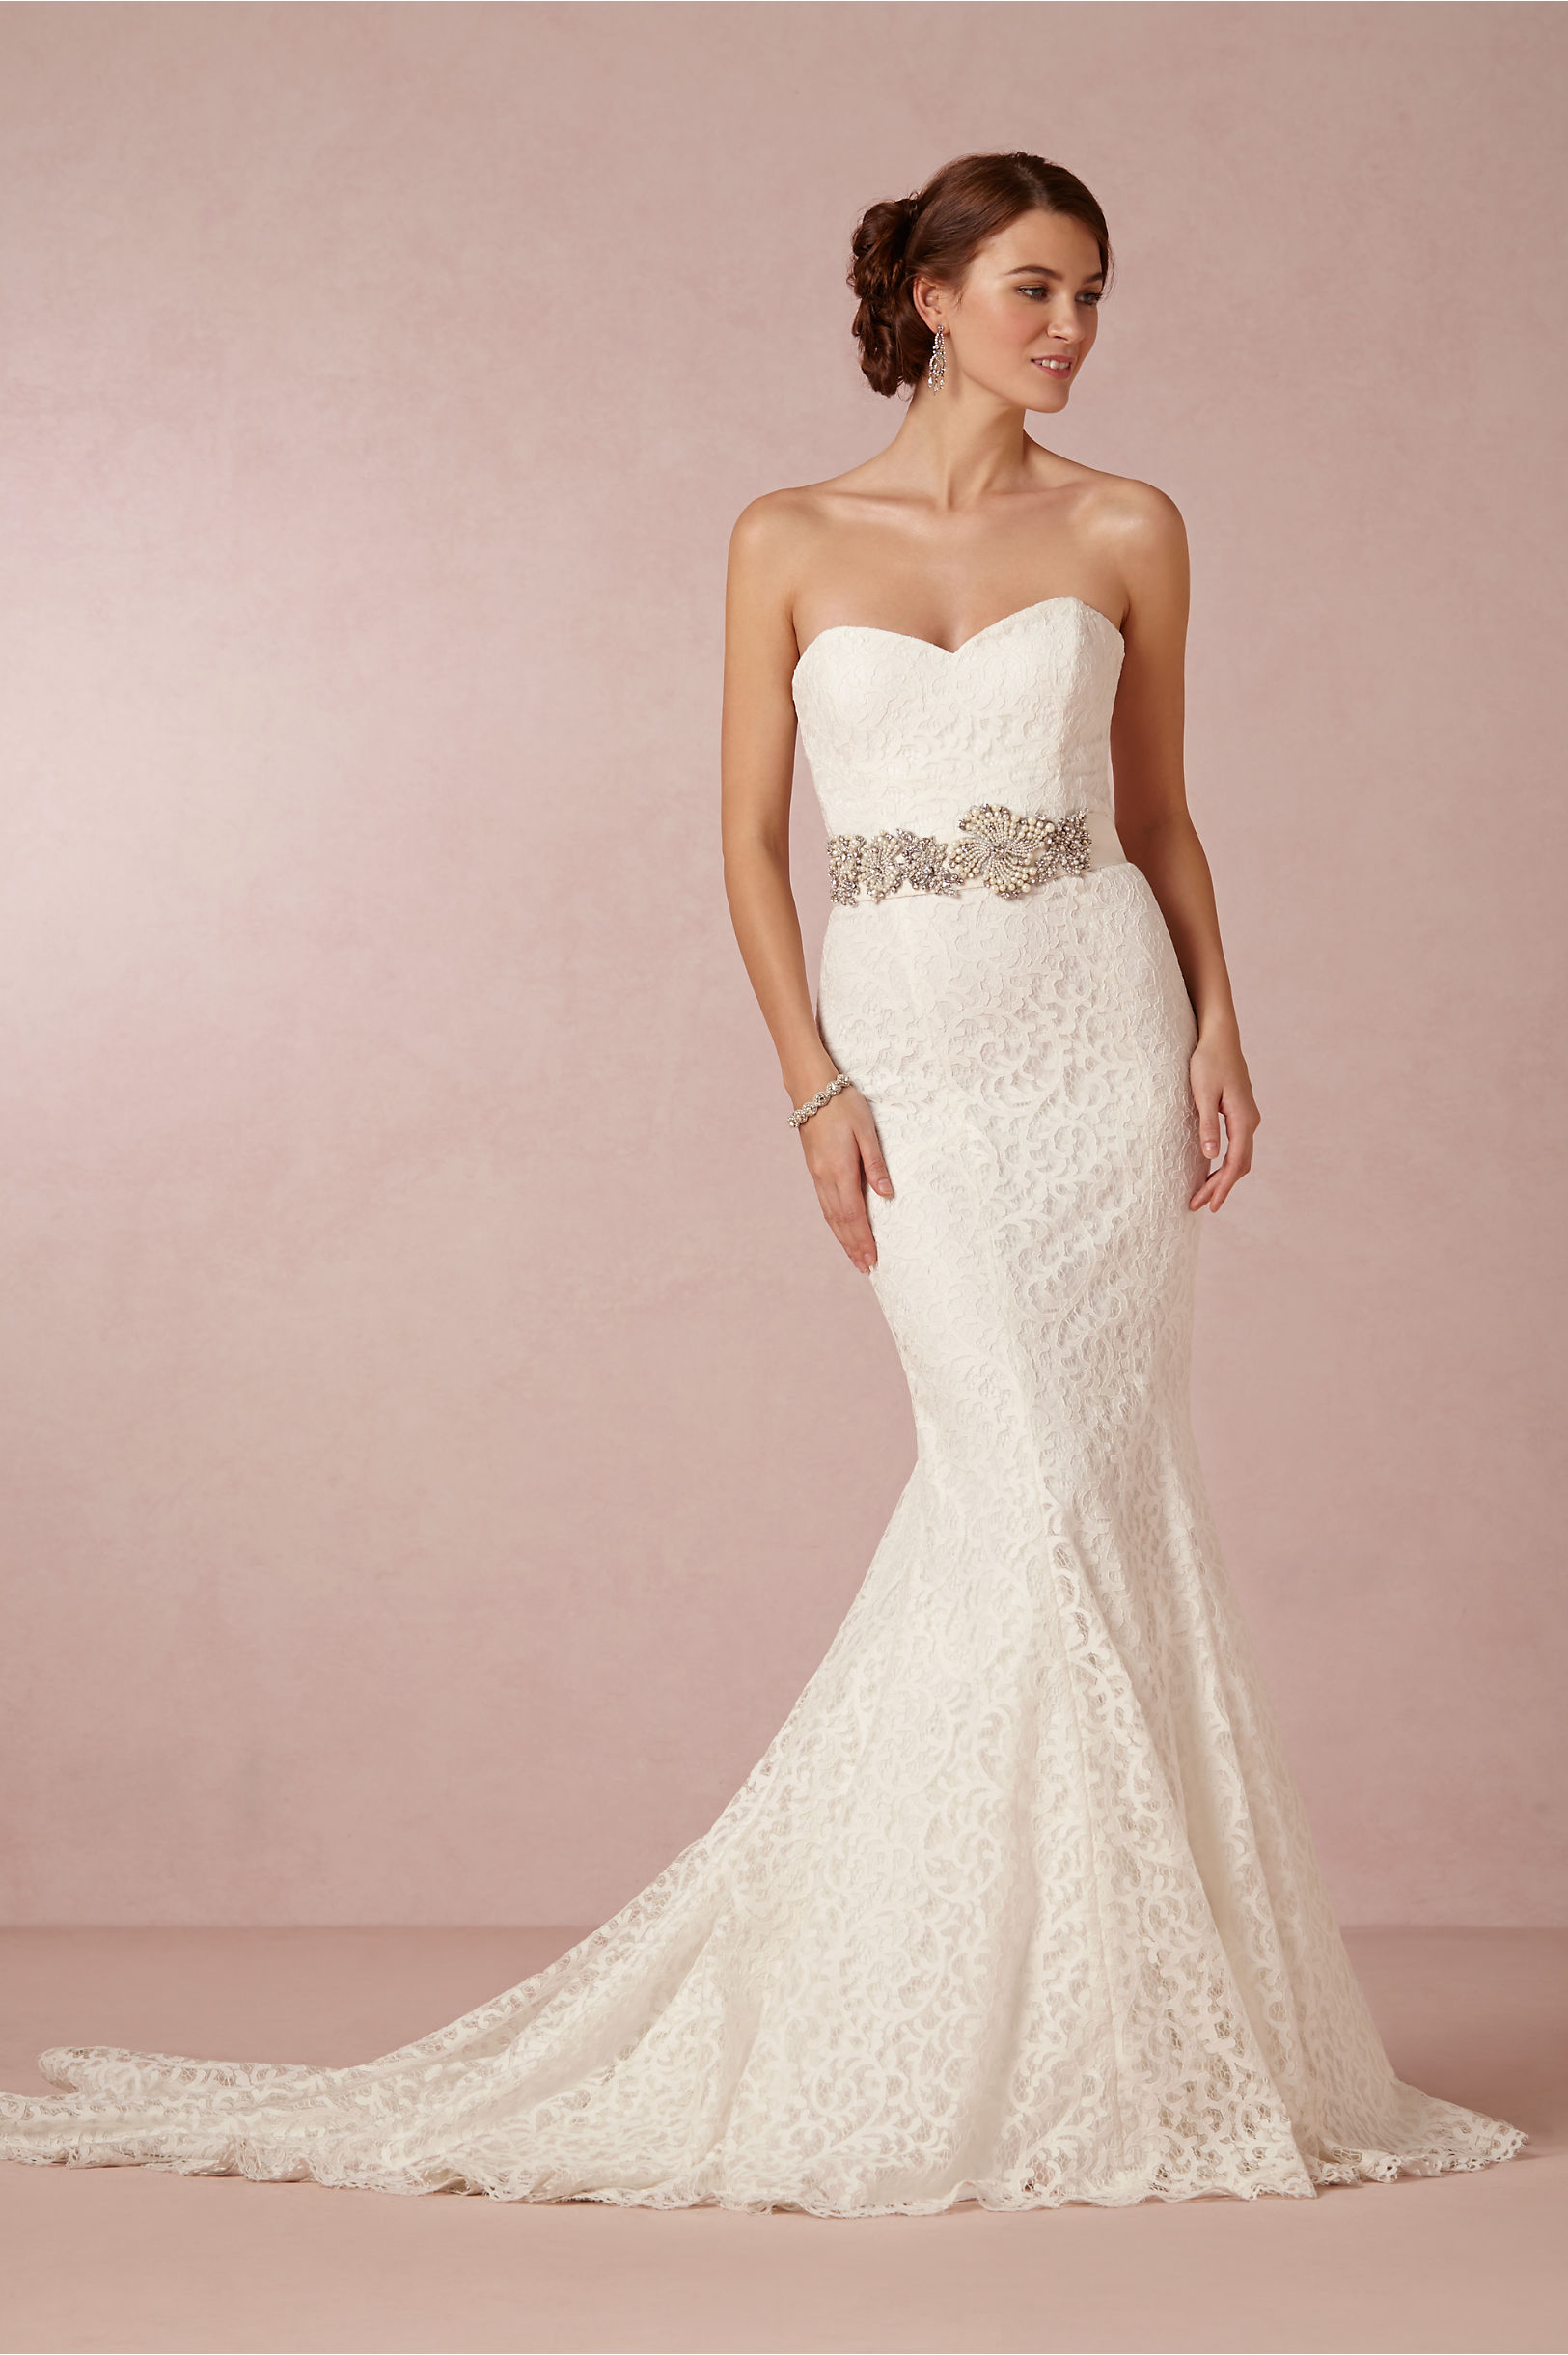 Vintage Strapless Sweetheart Crystal Waist Mermaid Lace Wedding Dress